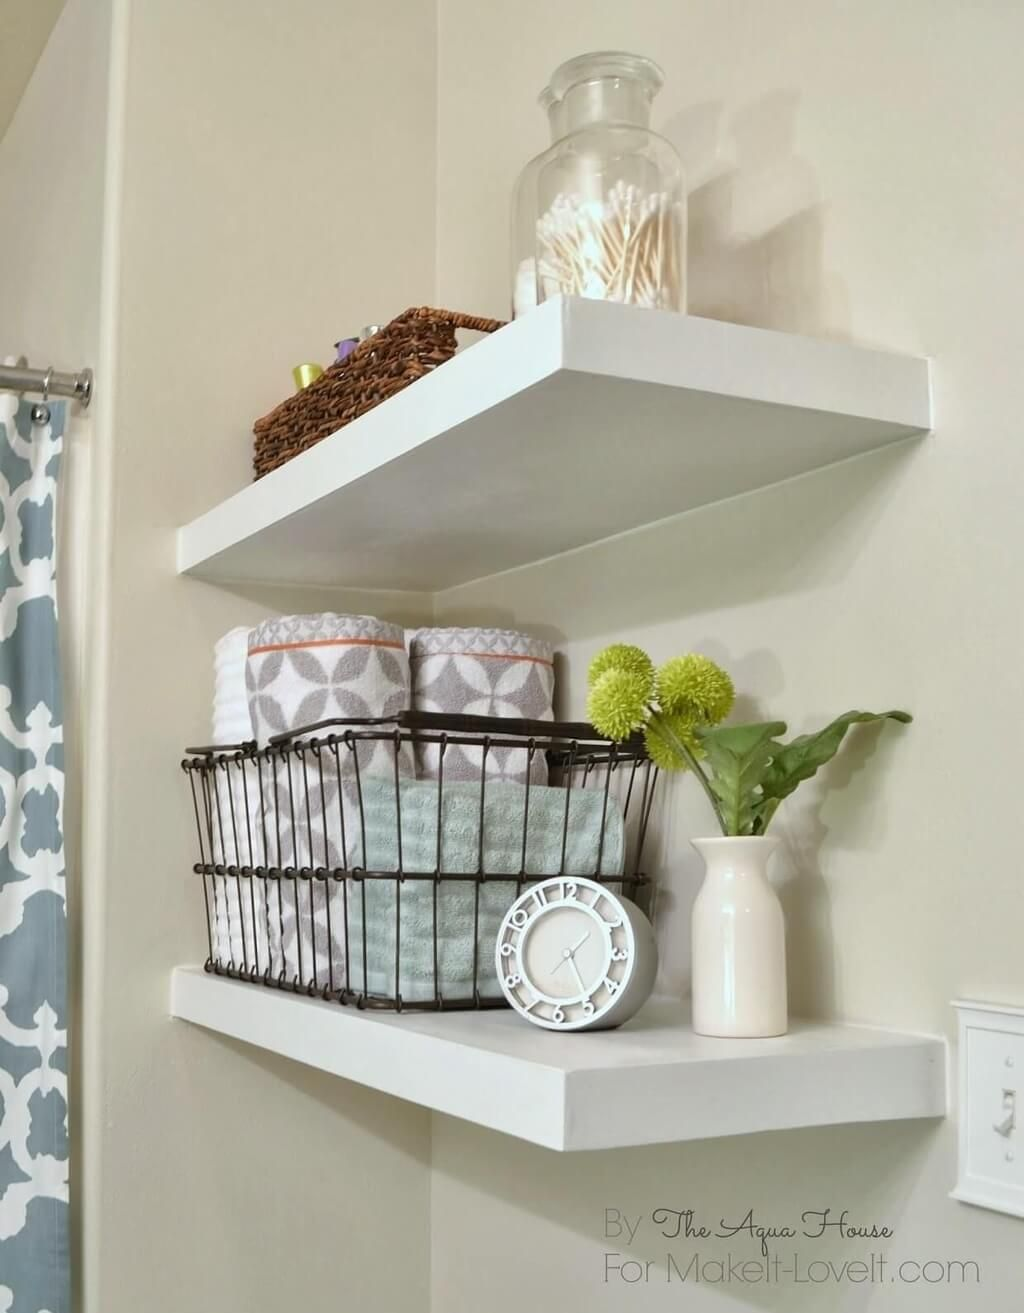 storage organization white corner floating shelves for bathroom diy deep building bookshelves nursery shaped bookshelf wall mounted box shelving units entryway cubbie shelf corona